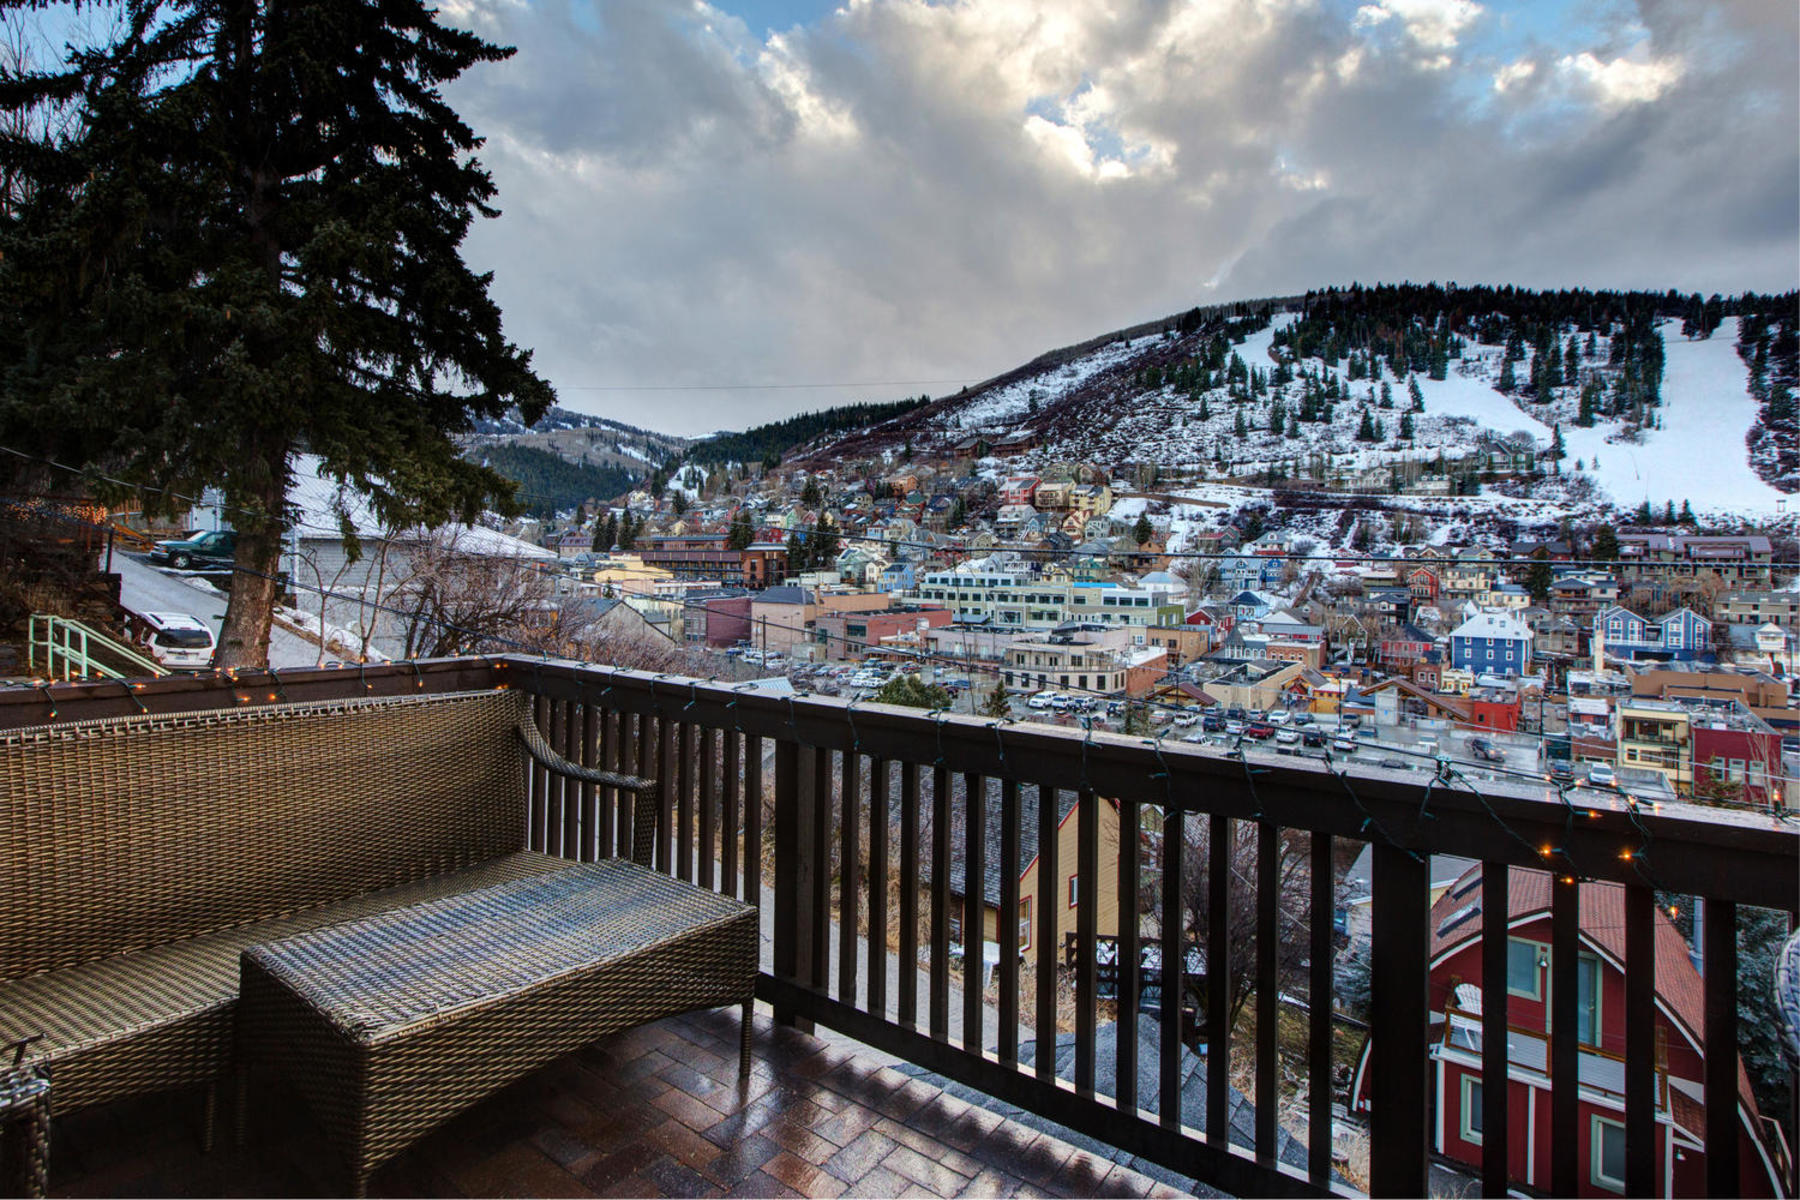 Casa Unifamiliar por un Venta en Beautifully Appointed with Ski Run Views 428 Ontario Ave Park City, Utah, 84060 Estados Unidos